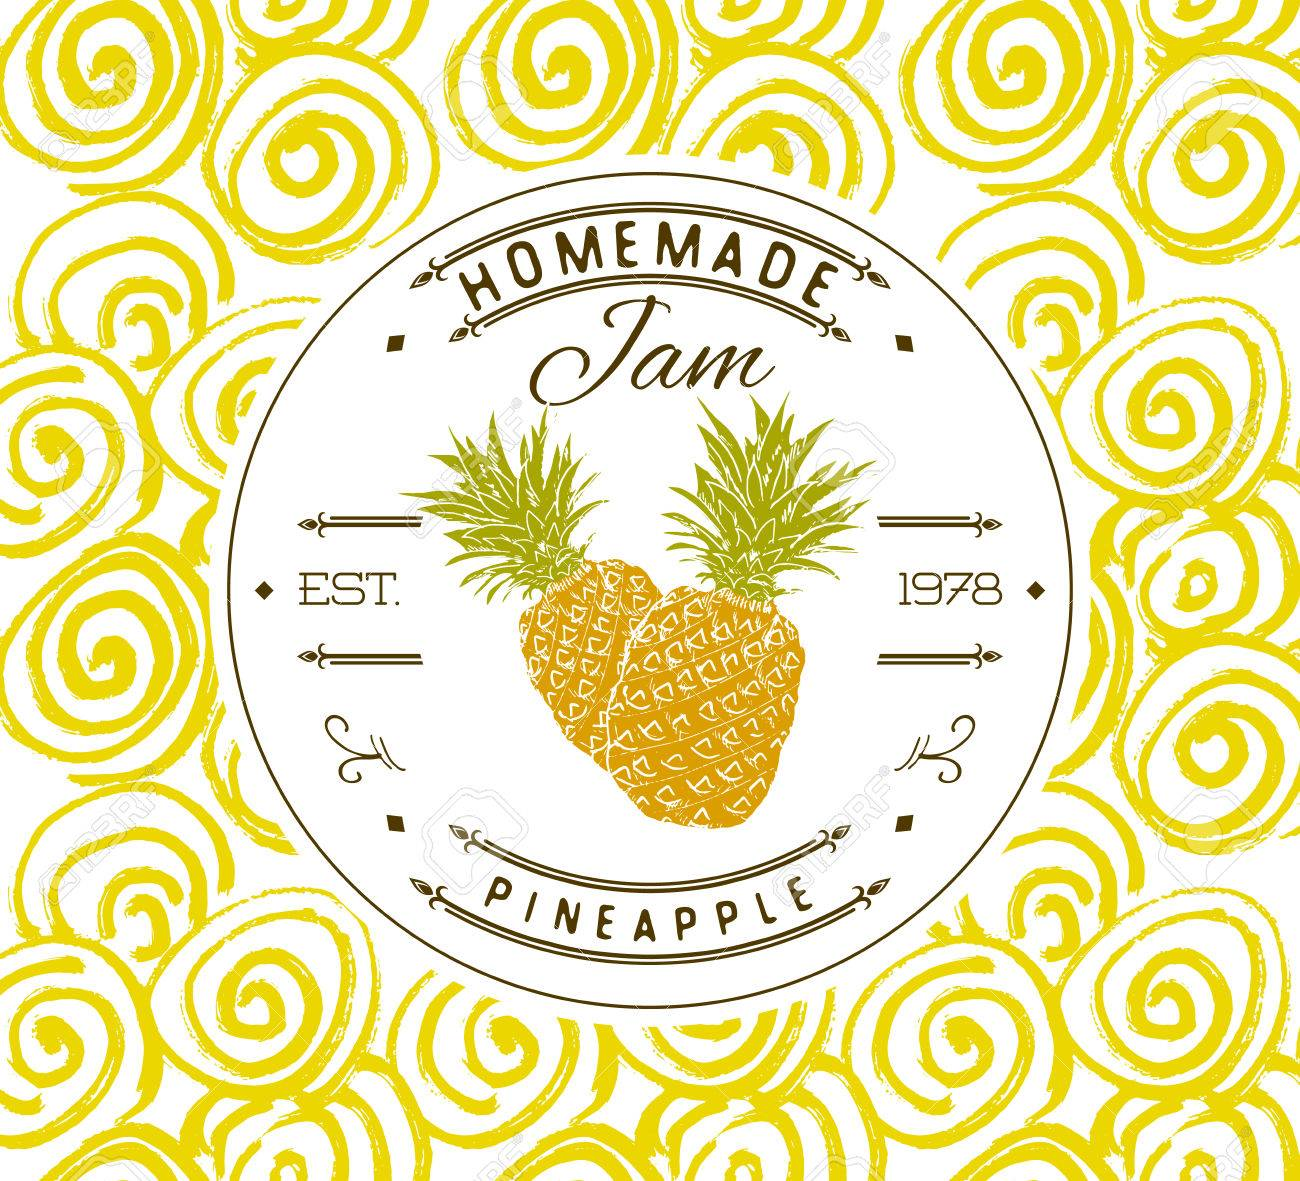 jam label design template for pineapple dessert product with